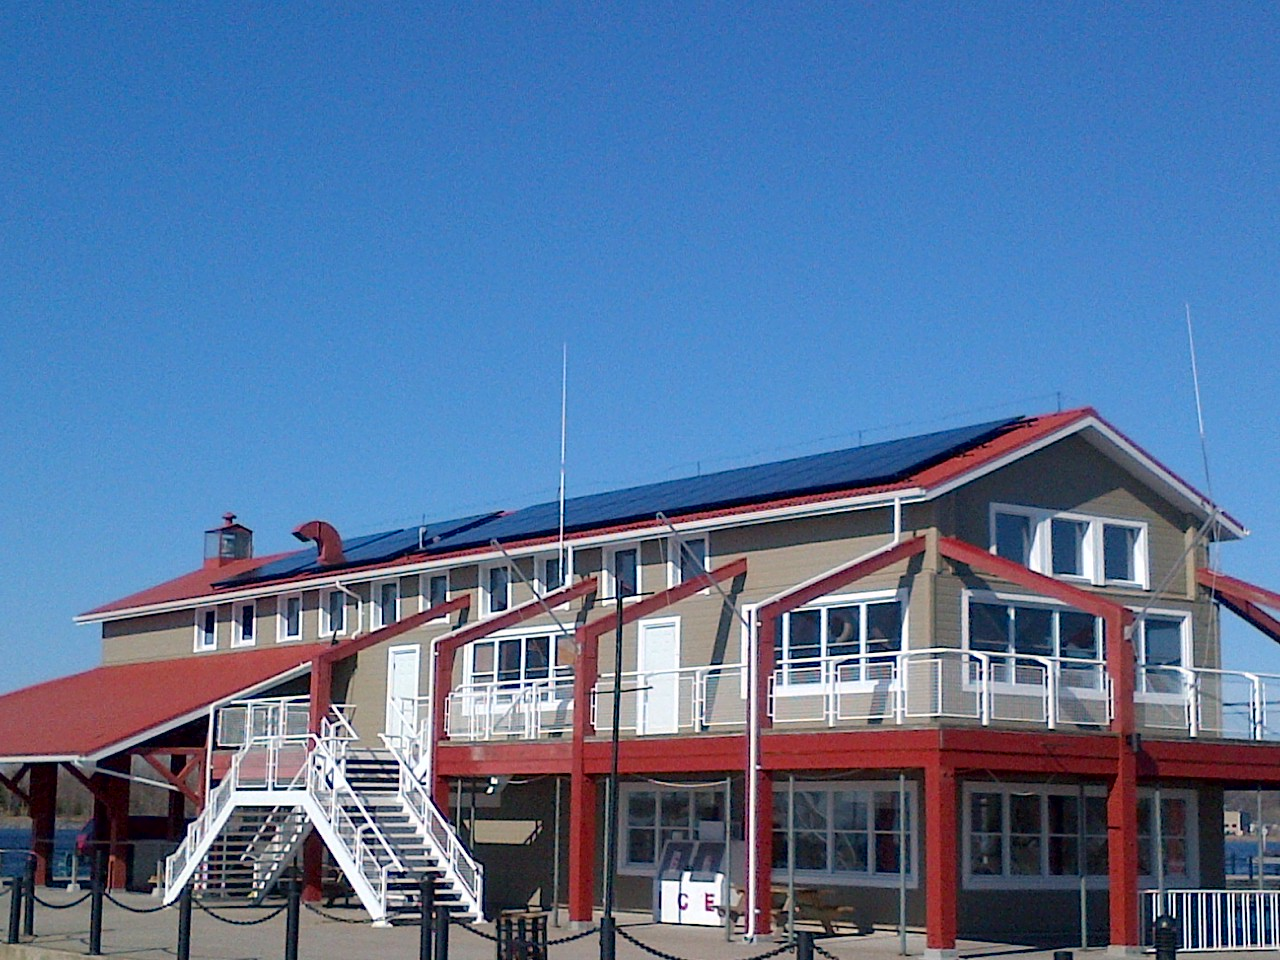 Rooftop solar panels at Meyers Pier